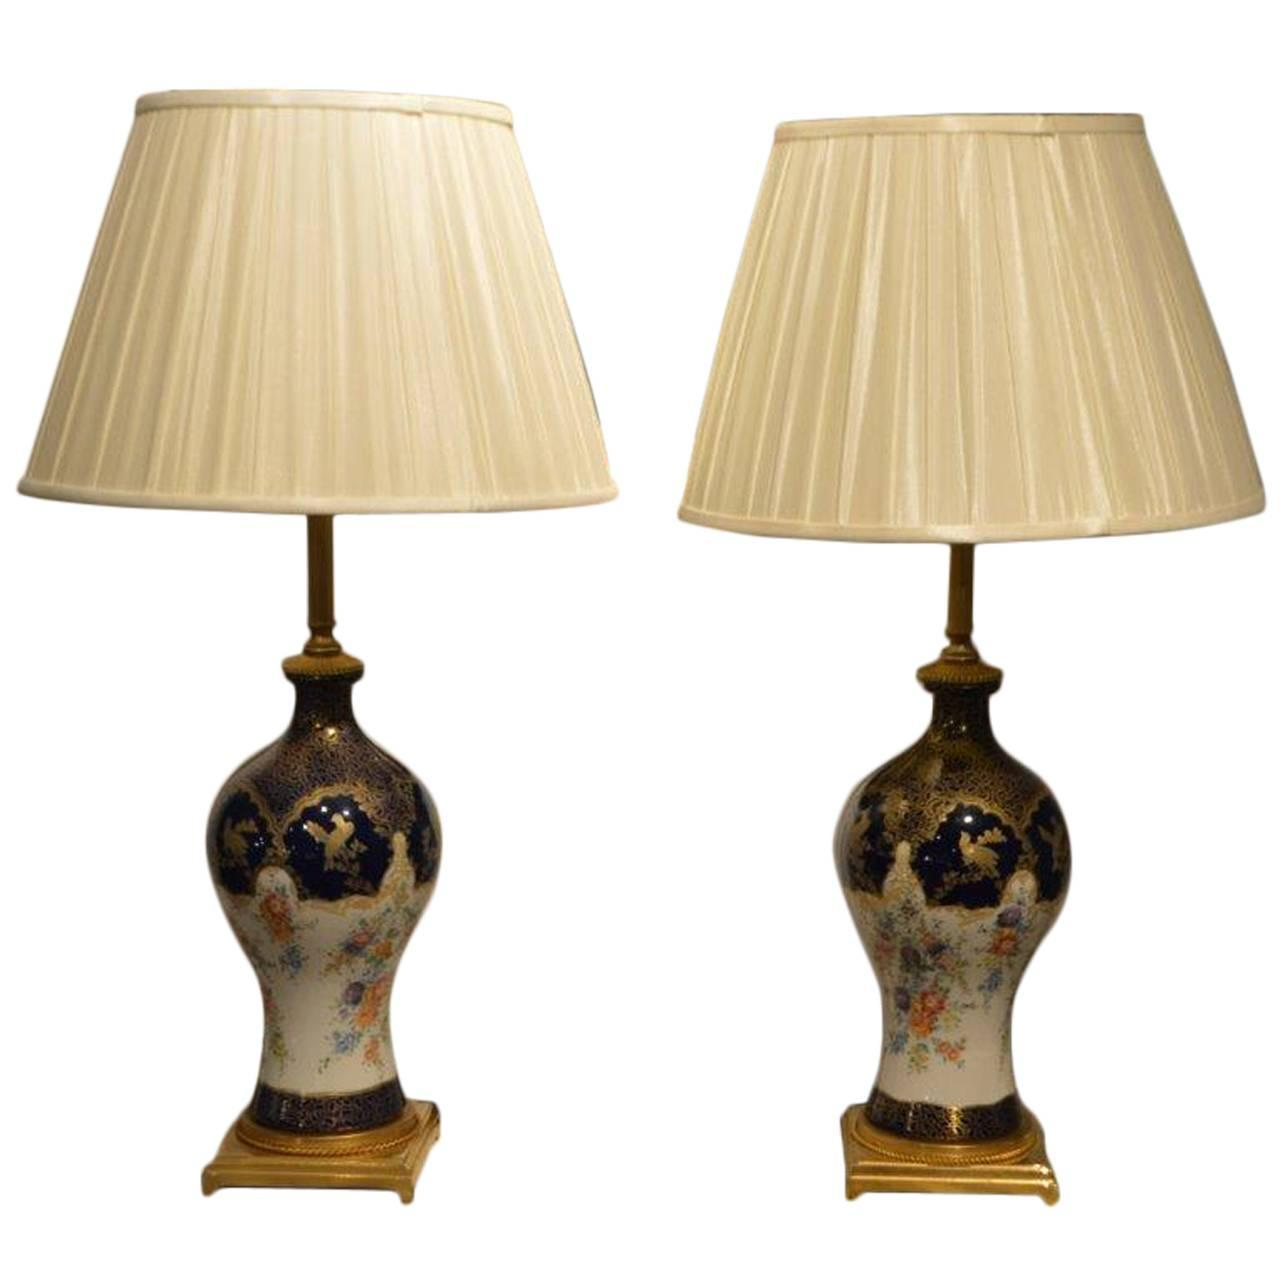 High Quality Pair Of Sevres Style French Porcelain Lamps